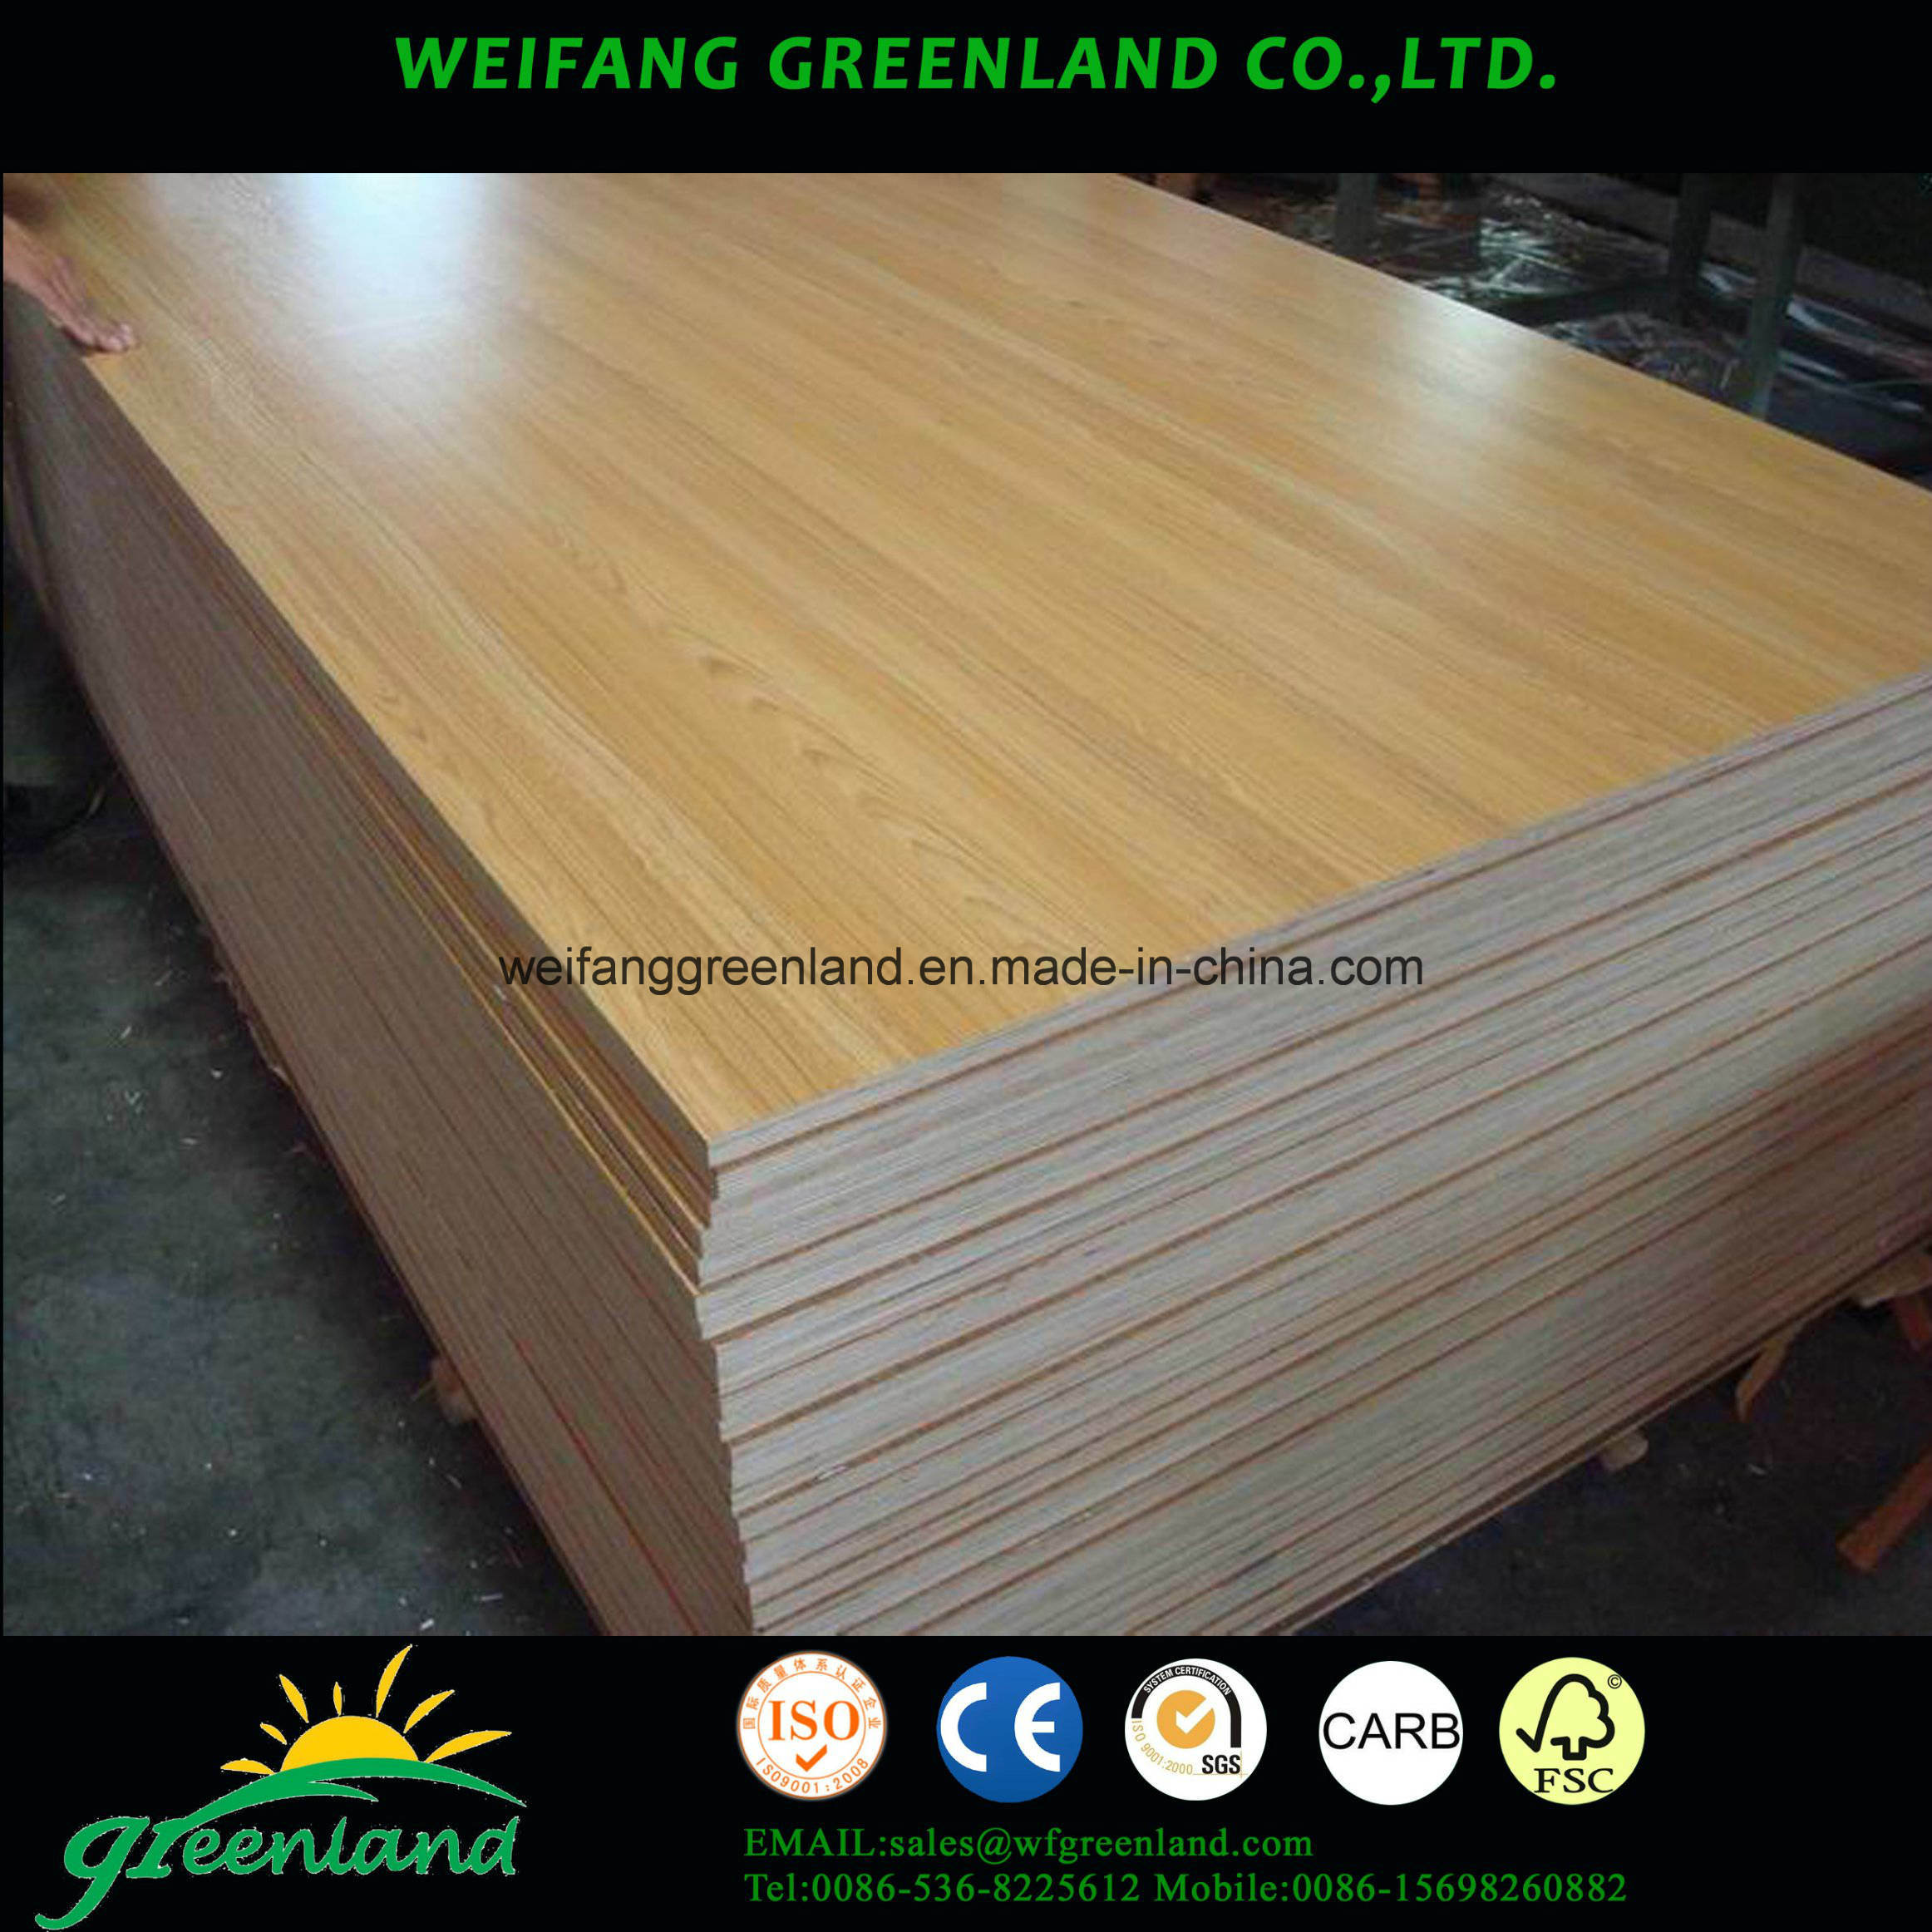 15mm Laminated Plywood Board for Furniture